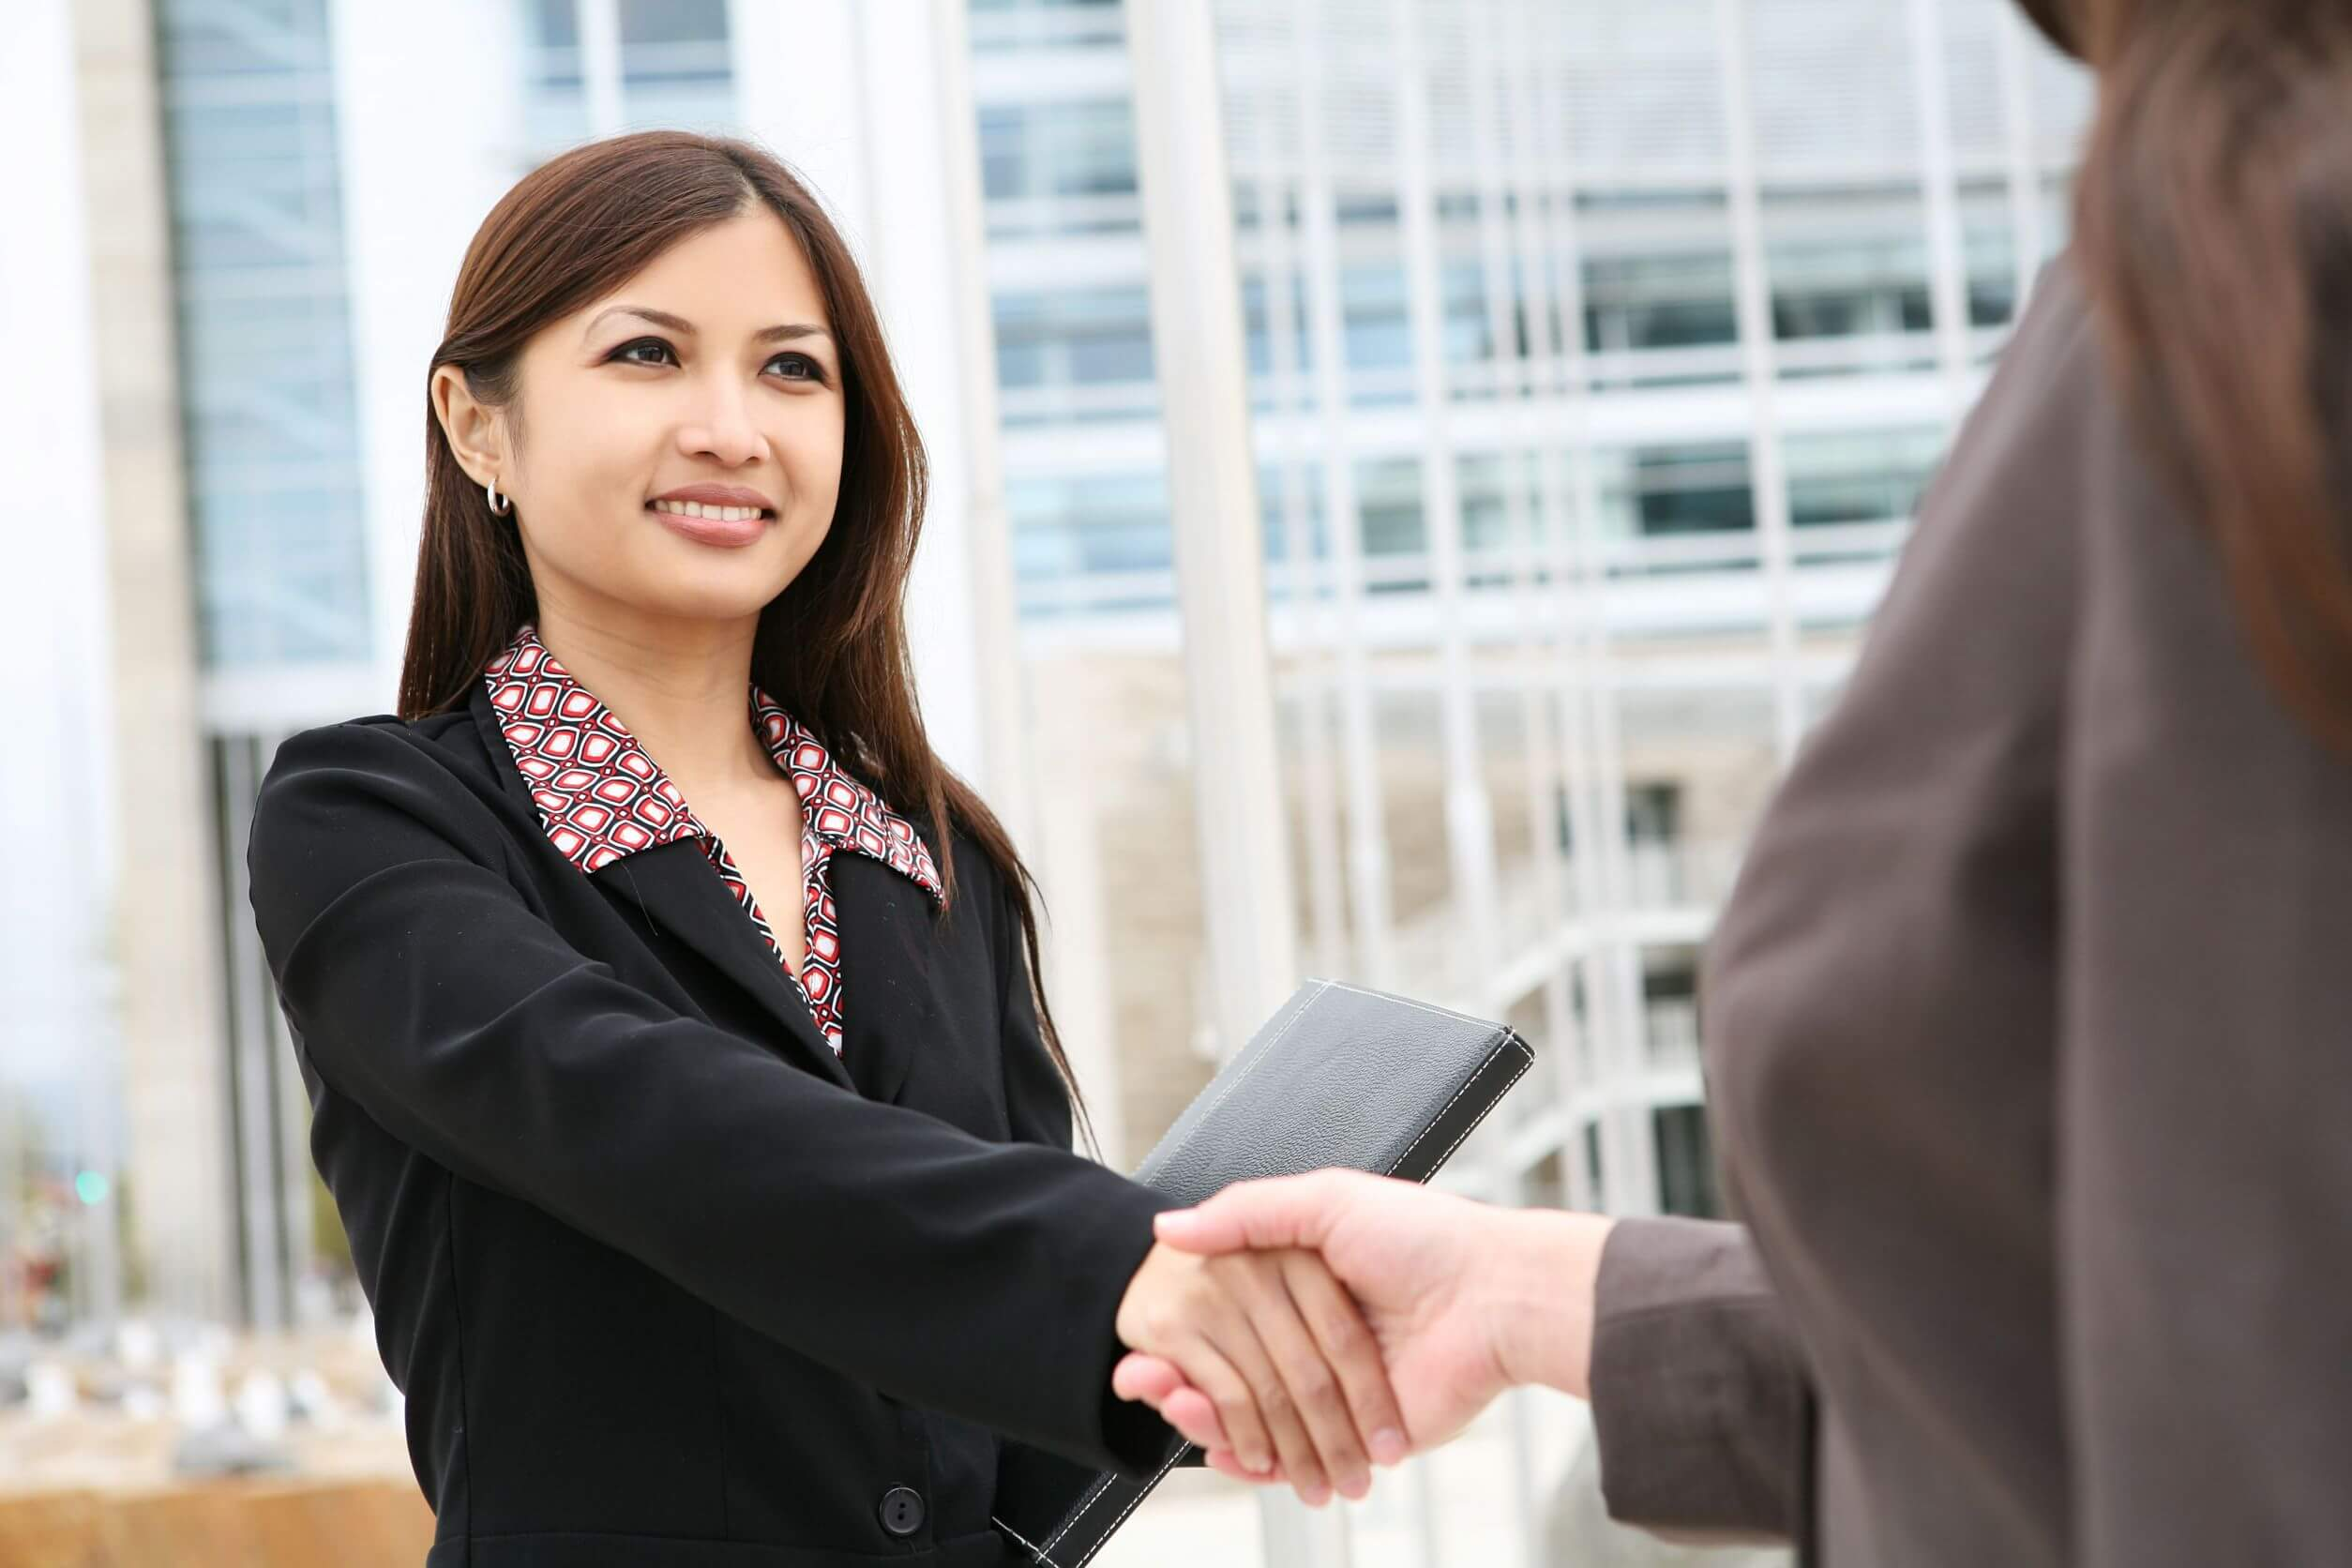 3 Tips for Negotiating a Great Deal